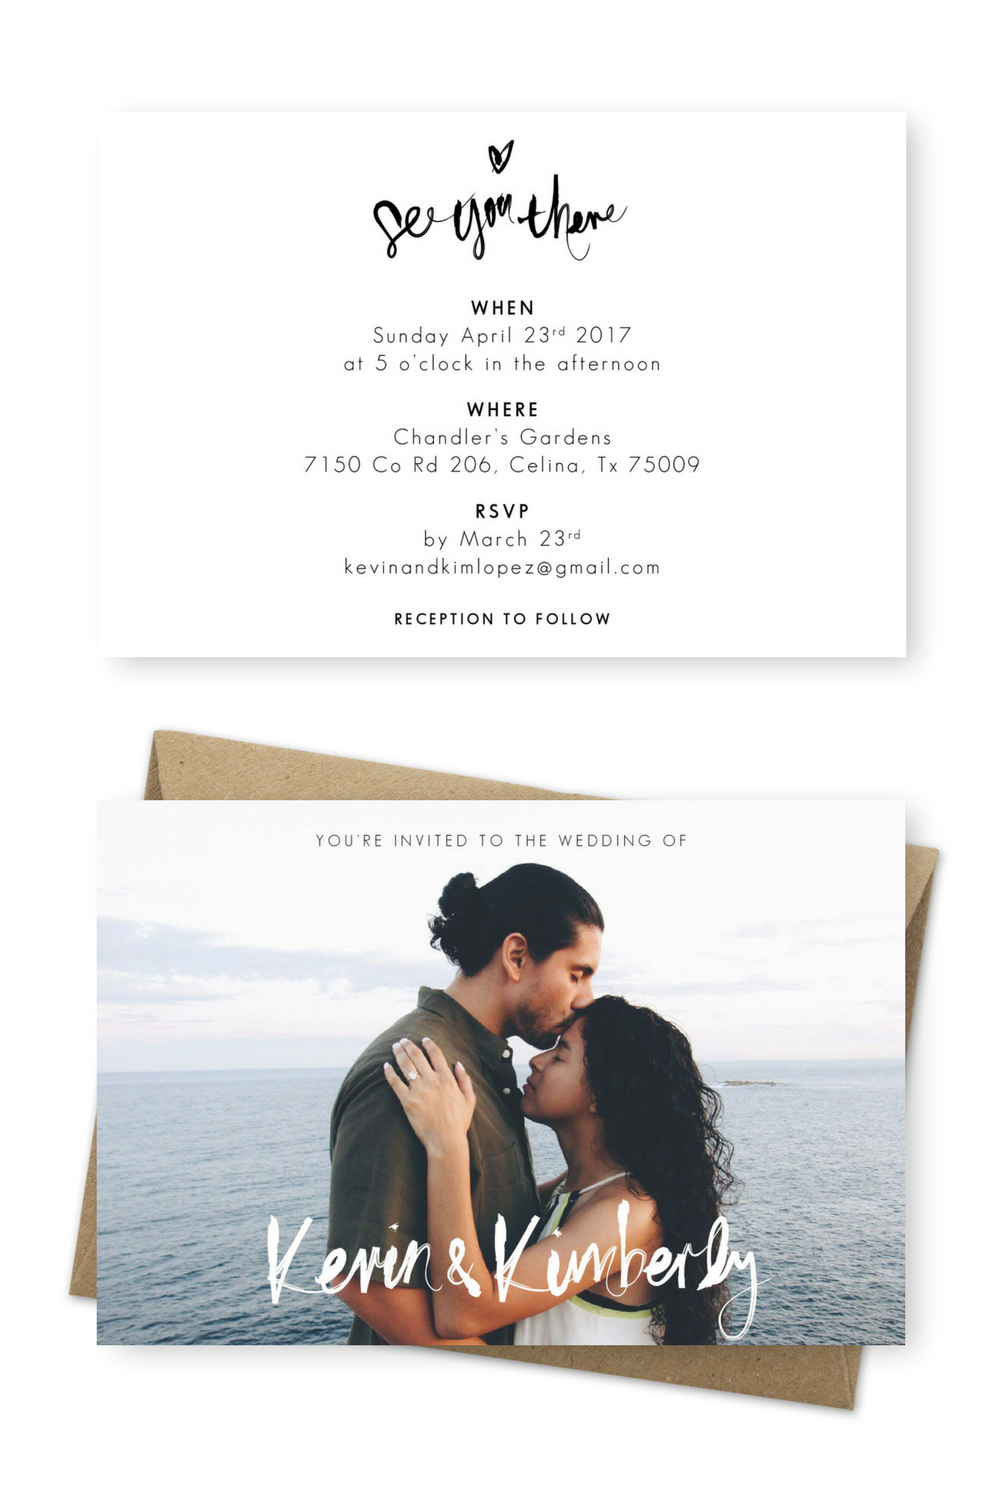 The Most Stunning Beach Wedding Invitation Ideas For You | Pinterest ...